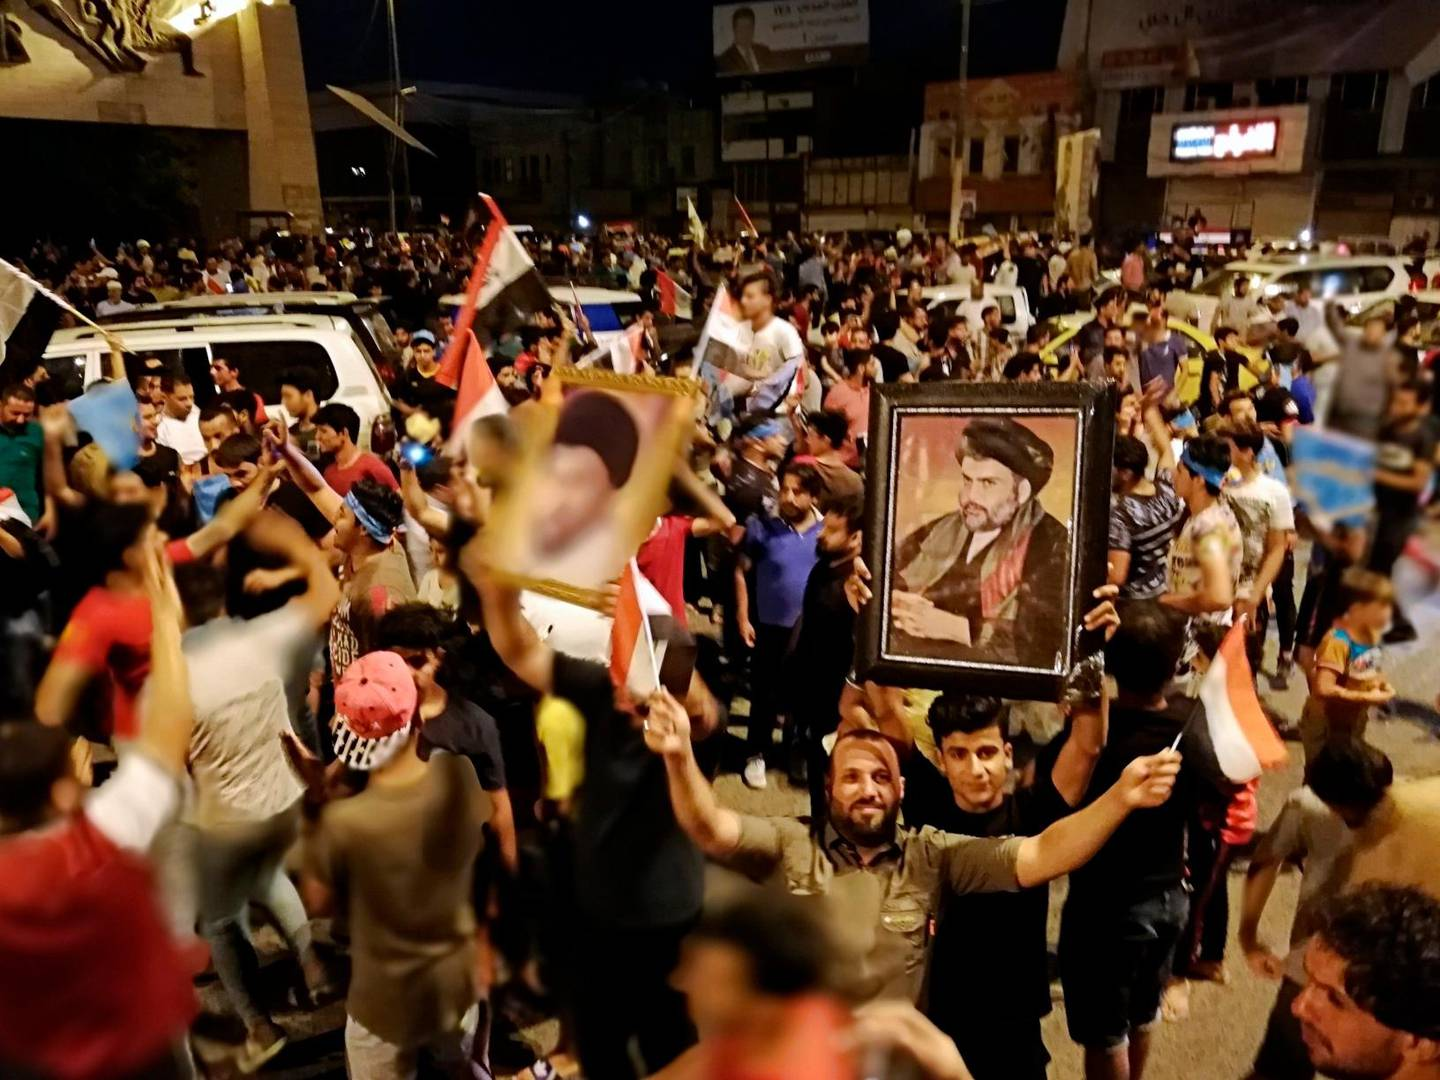 Followers of Shiite cleric Muqtada al-Sadr, seen in the posters, celebrate after the preliminary results of the parliamentary elections are announced, in Tahrir Square, Baghdad, Iraq, early Monday, May 14, 2018. (AP Photo/Hadi Mizban)